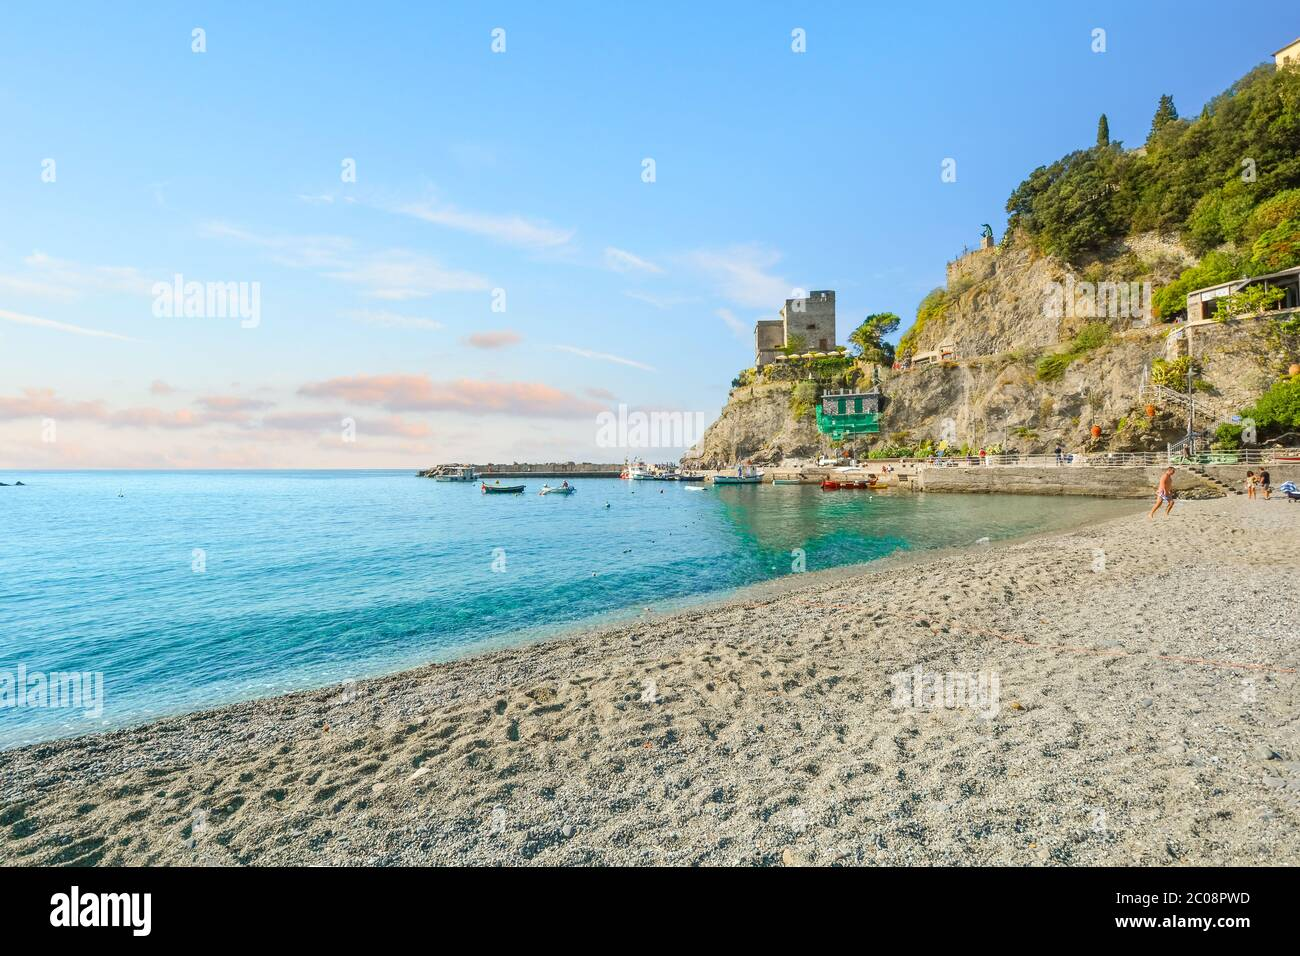 The ruins of the Aurora Tower and Castle at Monterosso al Mare rise above the sandy beach and coast in Cinque Terre Italy on the Ligurian Coast Stock Photo